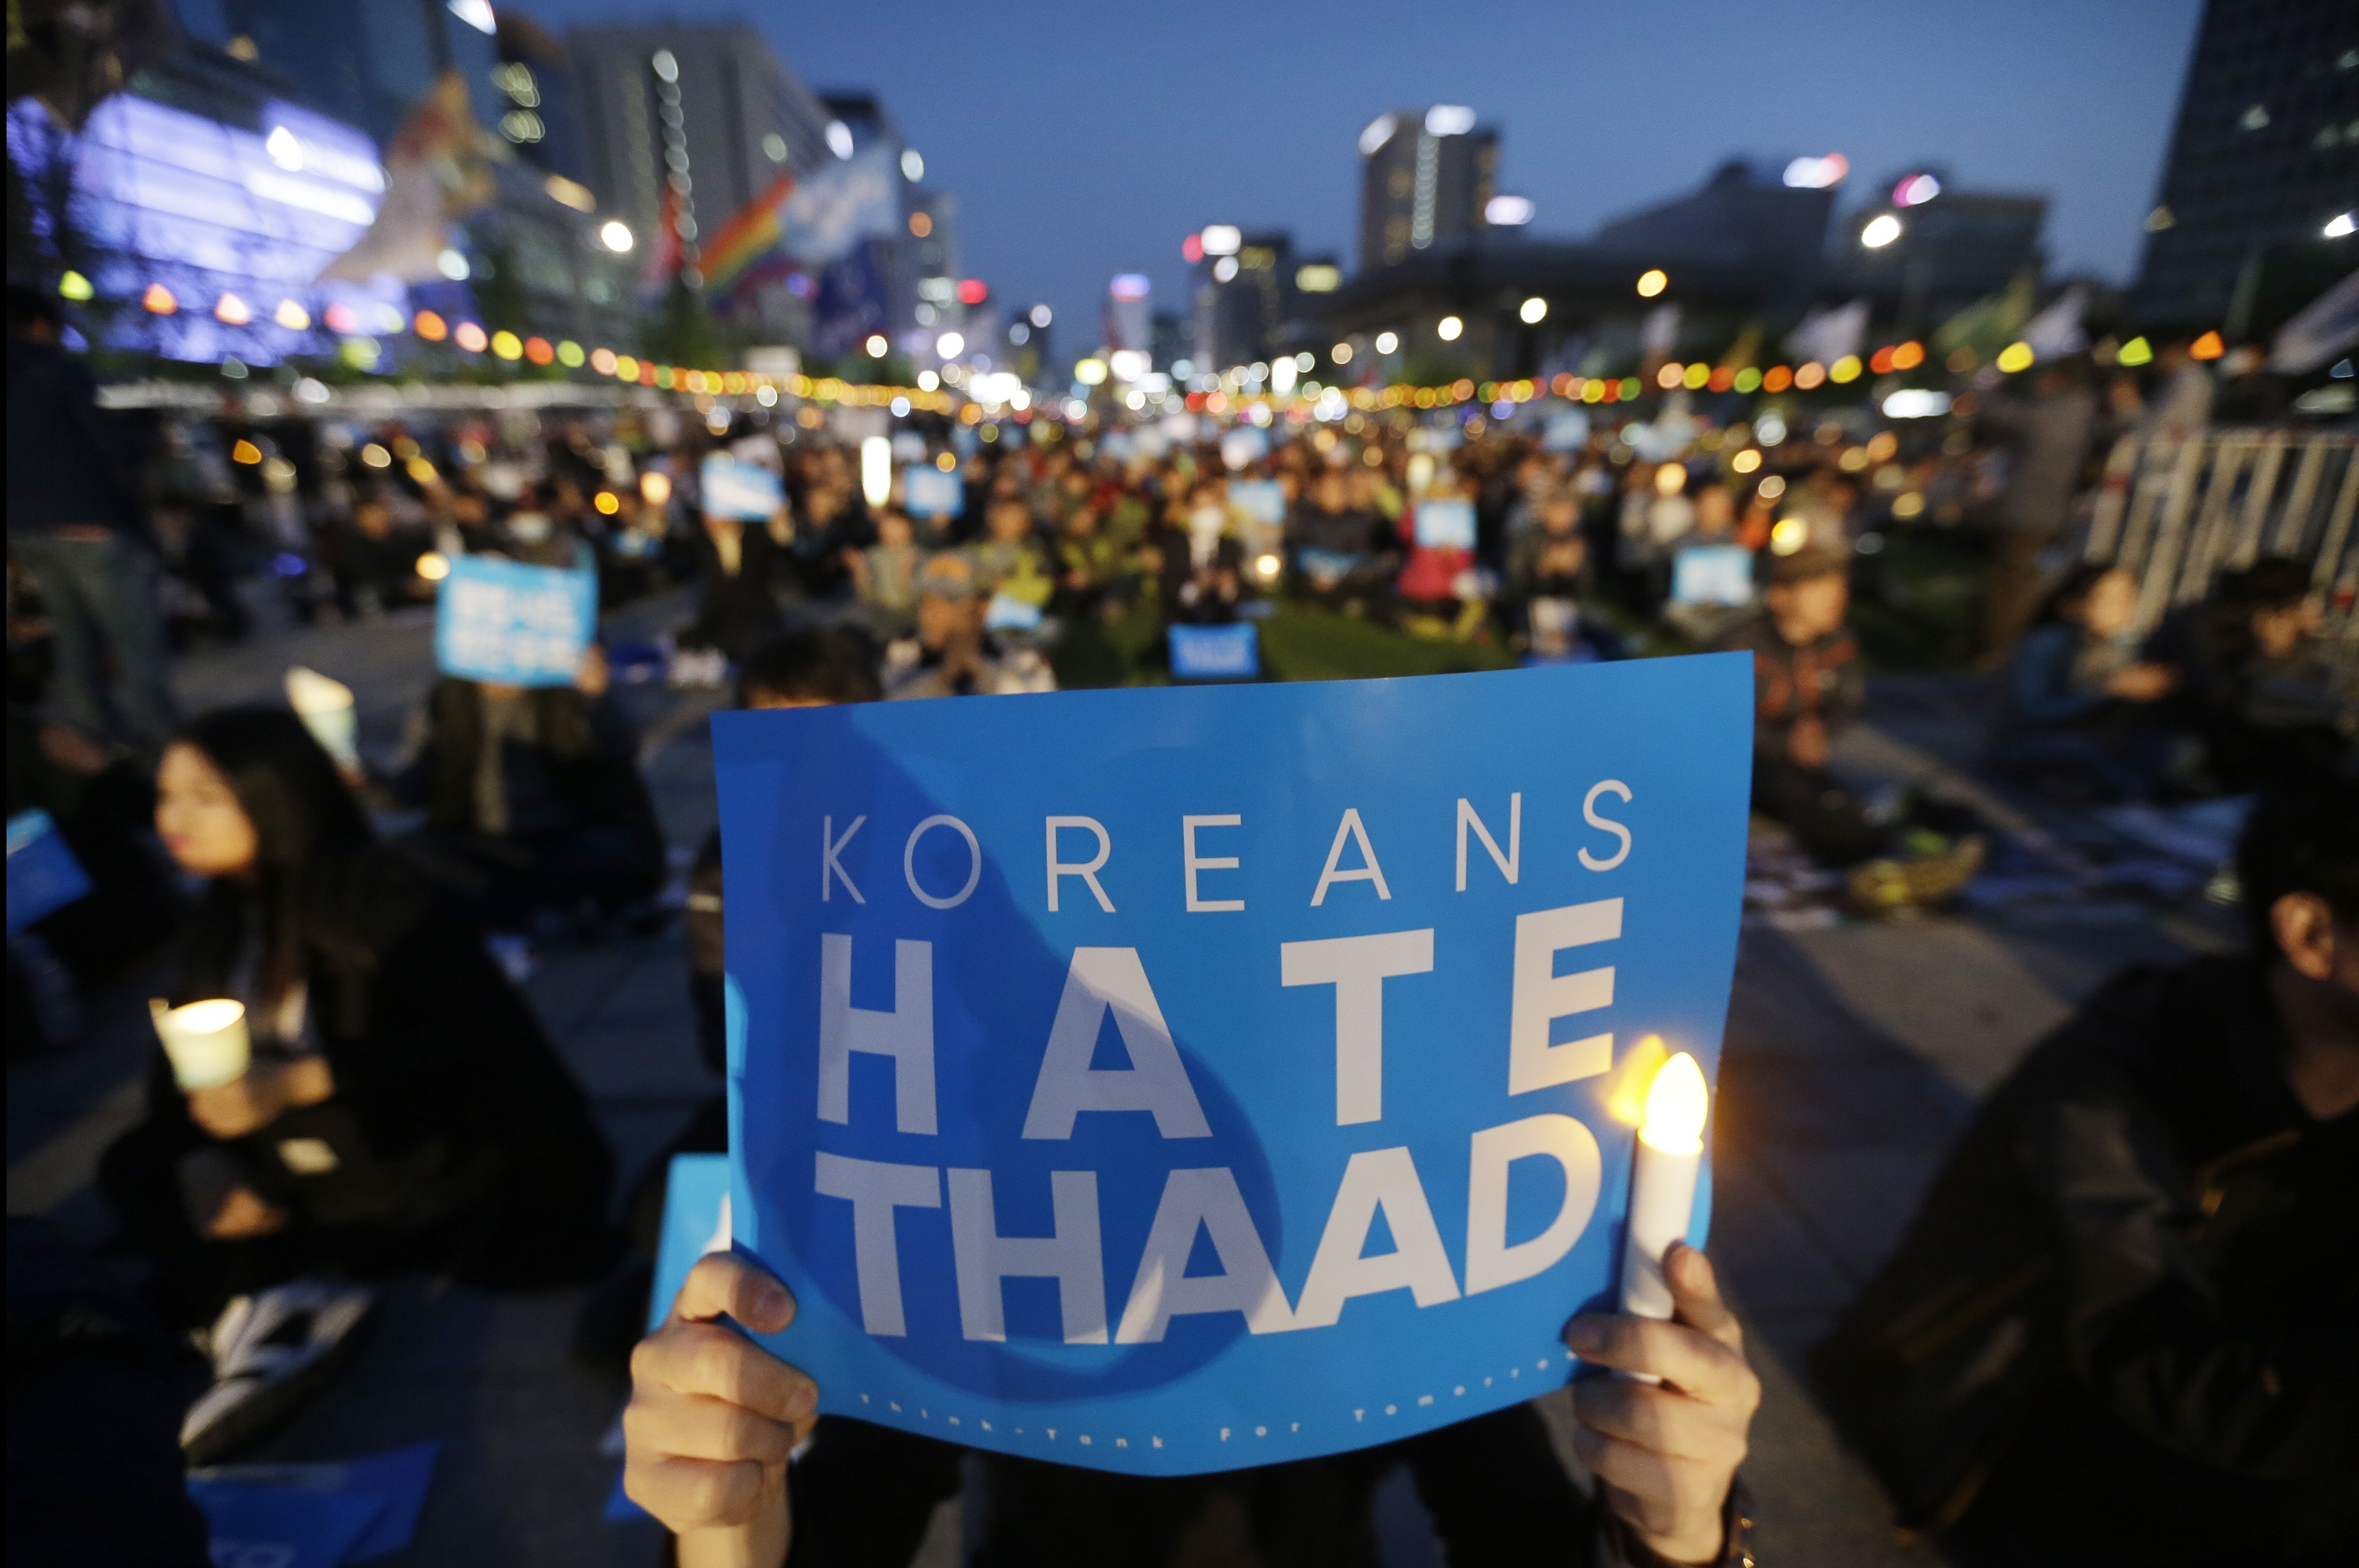 South Korean protesters stage a rally to oppose a plan to deploy the advanced U.S. missile defense system called Terminal High-Altitude Area Defense, or THAAD, near U.S. Embassy in Seoul, South Korea, Saturday, April 29, 2017.